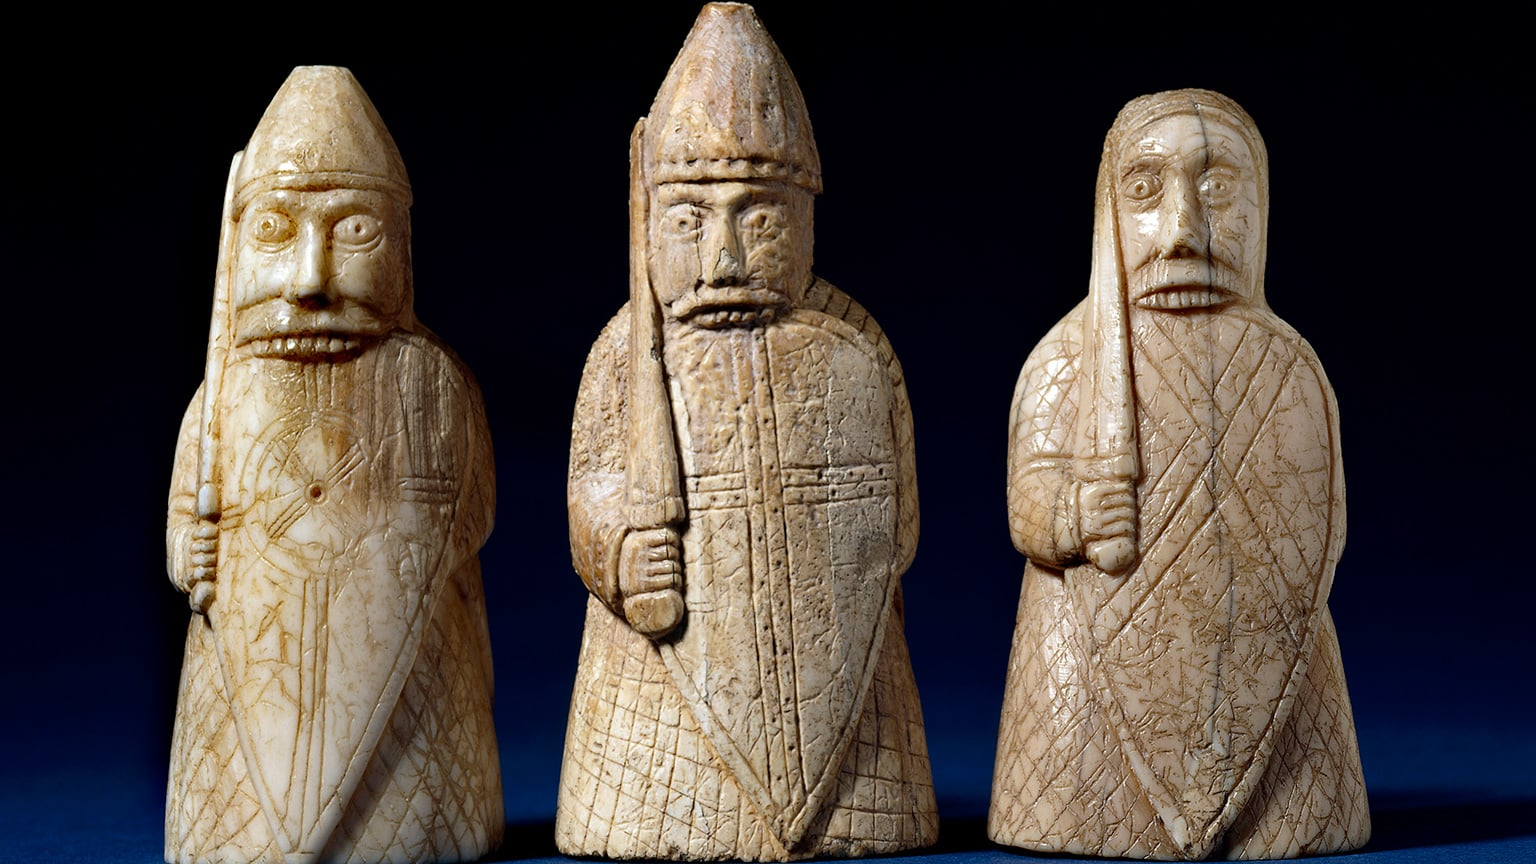 1. Vikings at the British Museum. 50% off with National Art Pass - The Lewis Chessmen, berserkers. Late 12th century, Uig, Lewis, Scotland. Copyright of The Trustees of the British Museum.